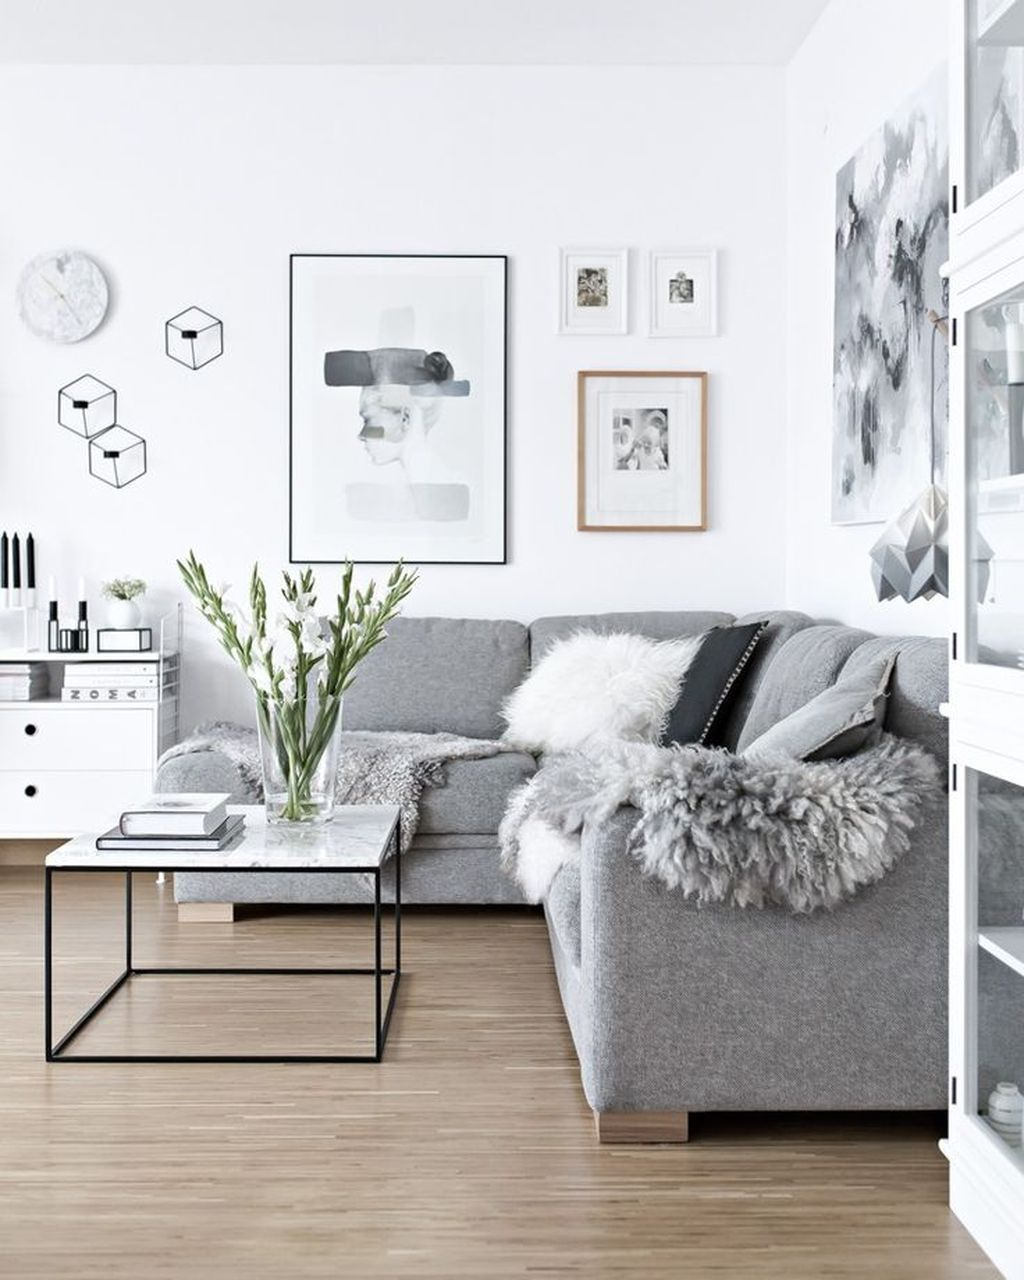 Exceptionnel Nice 48 Cozy And Minimalist Apartment Interior Design Ideas You Will  Totally Love. More At